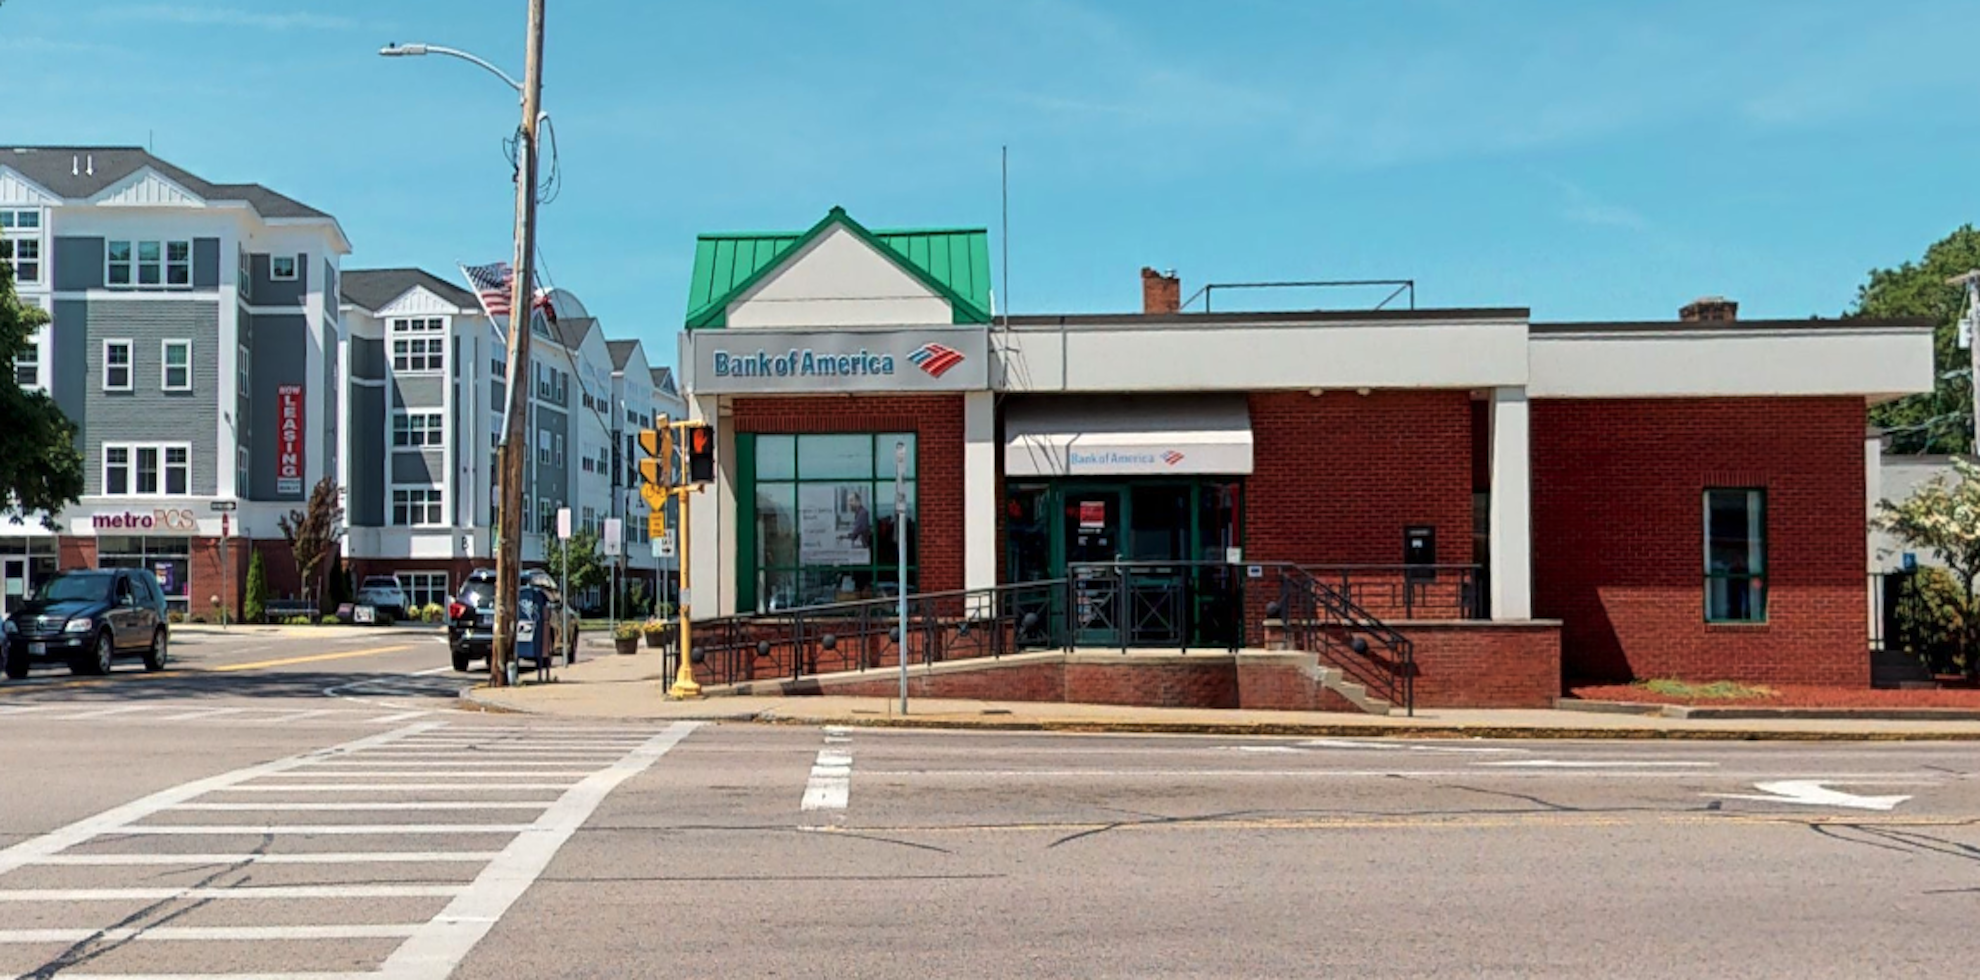 Bank of America financial center with drive-thru ATM   355 N Main St, Mansfield, MA 02048